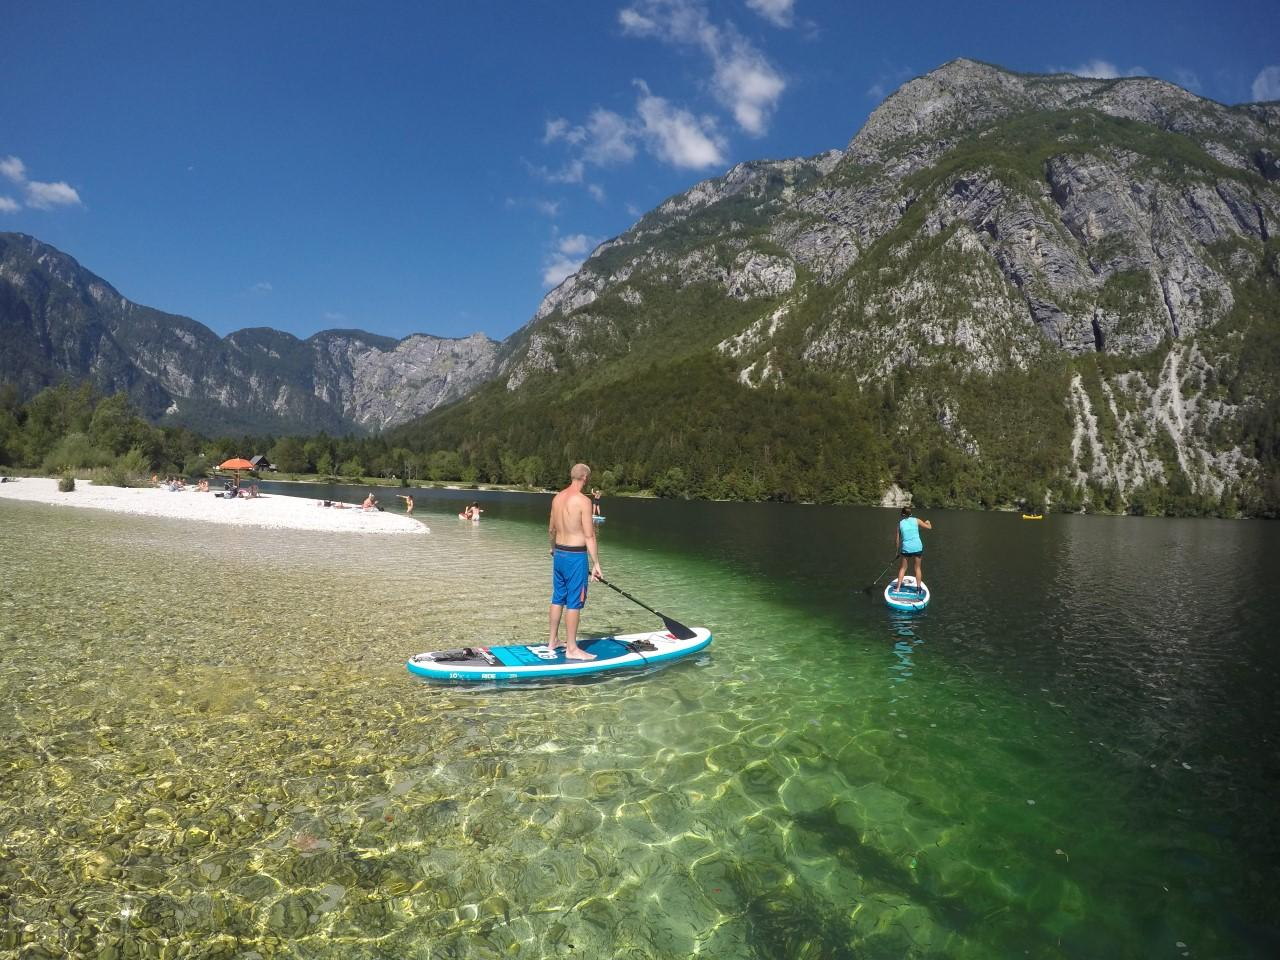 Explore Bohinj with SUP board and have fun